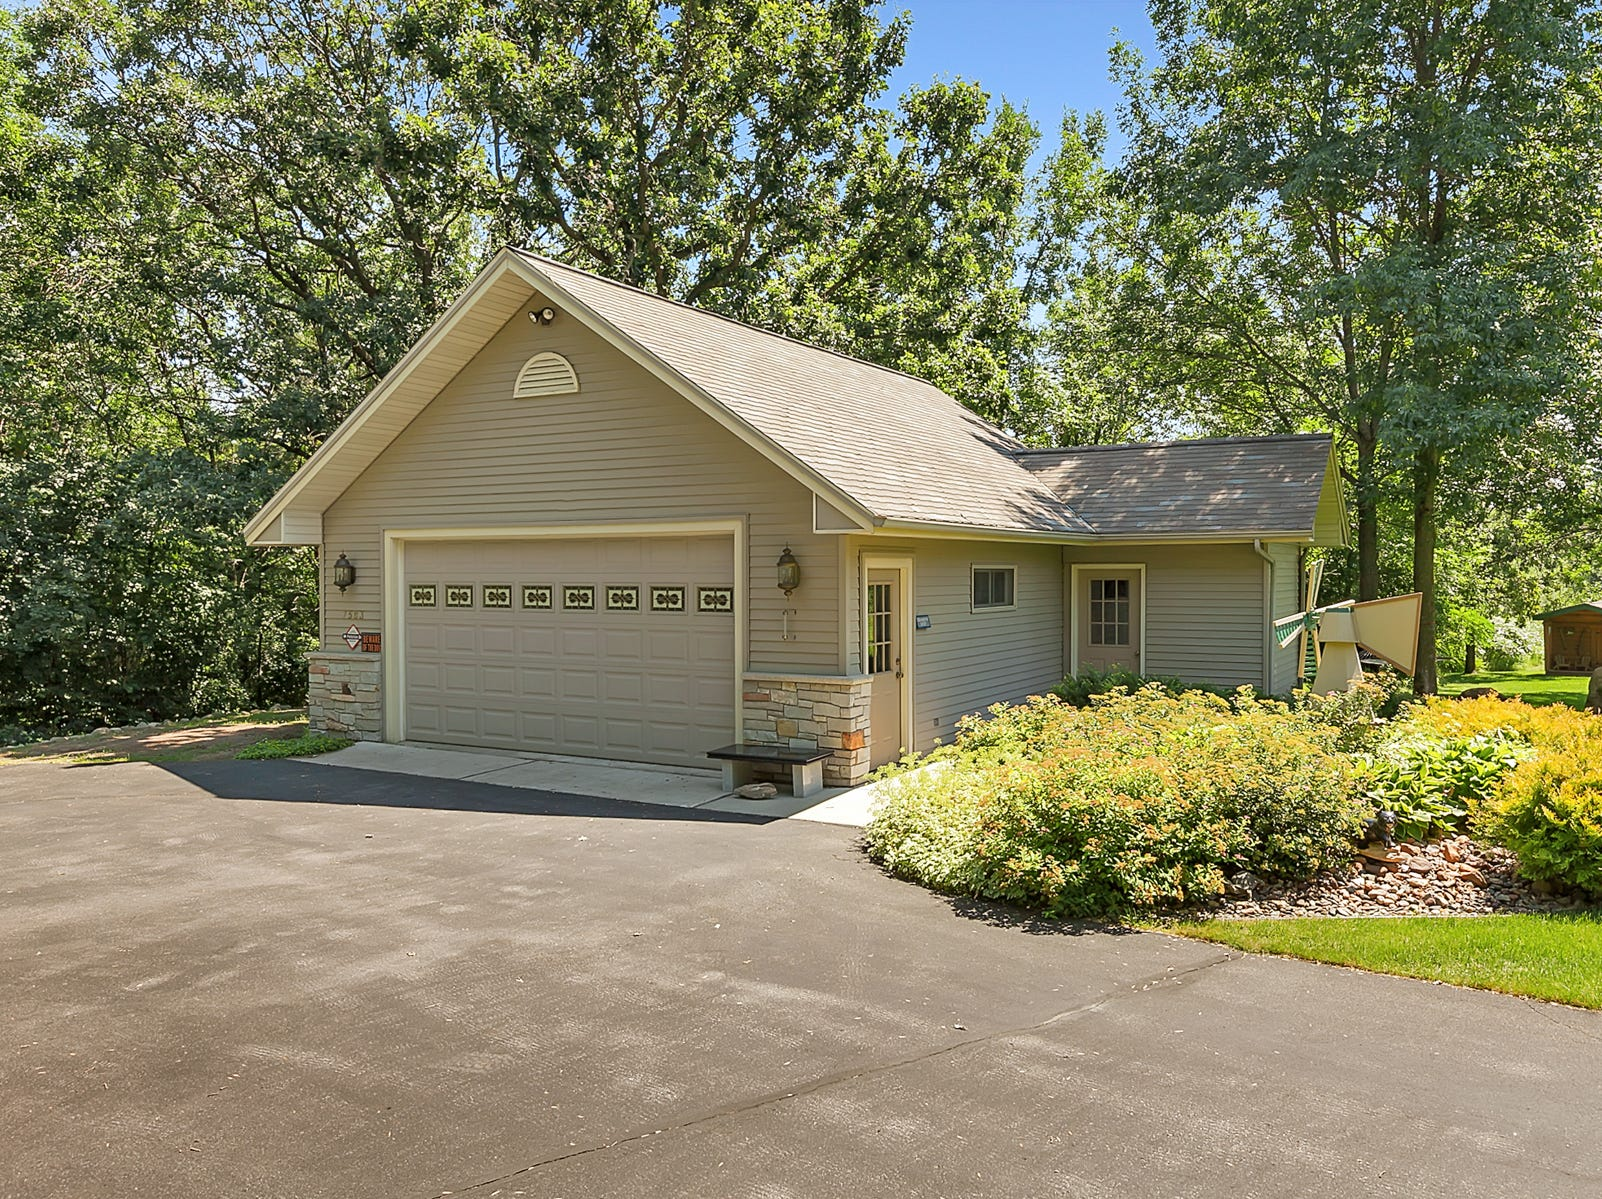 The property features a storage shed that could double as another garage.